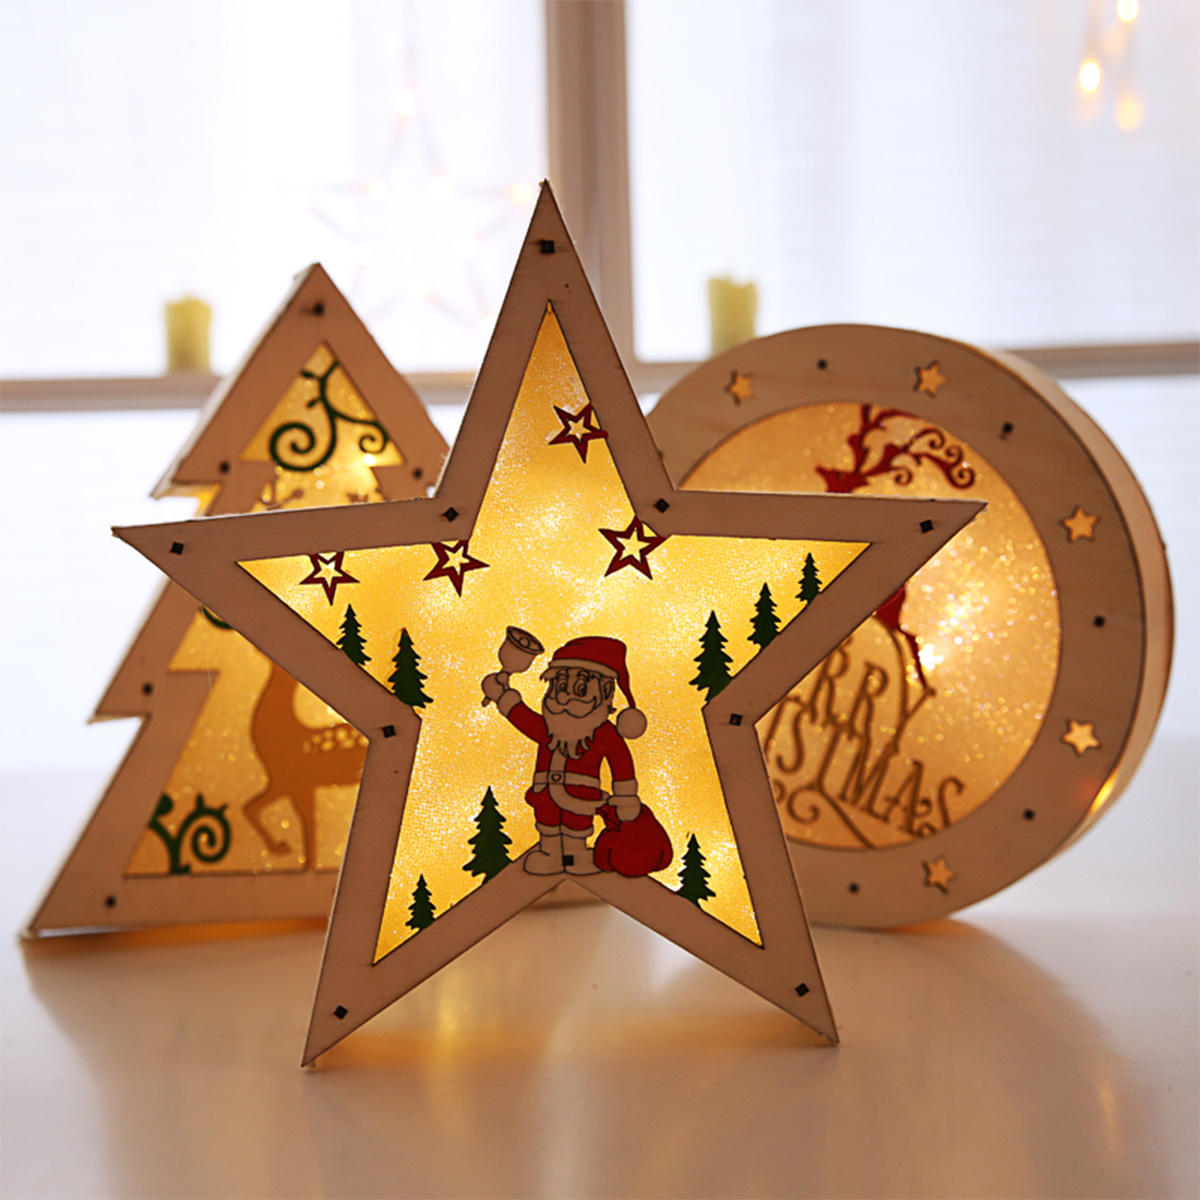 LED Light Christmas Decorations Houten bureau ornamenten - 1